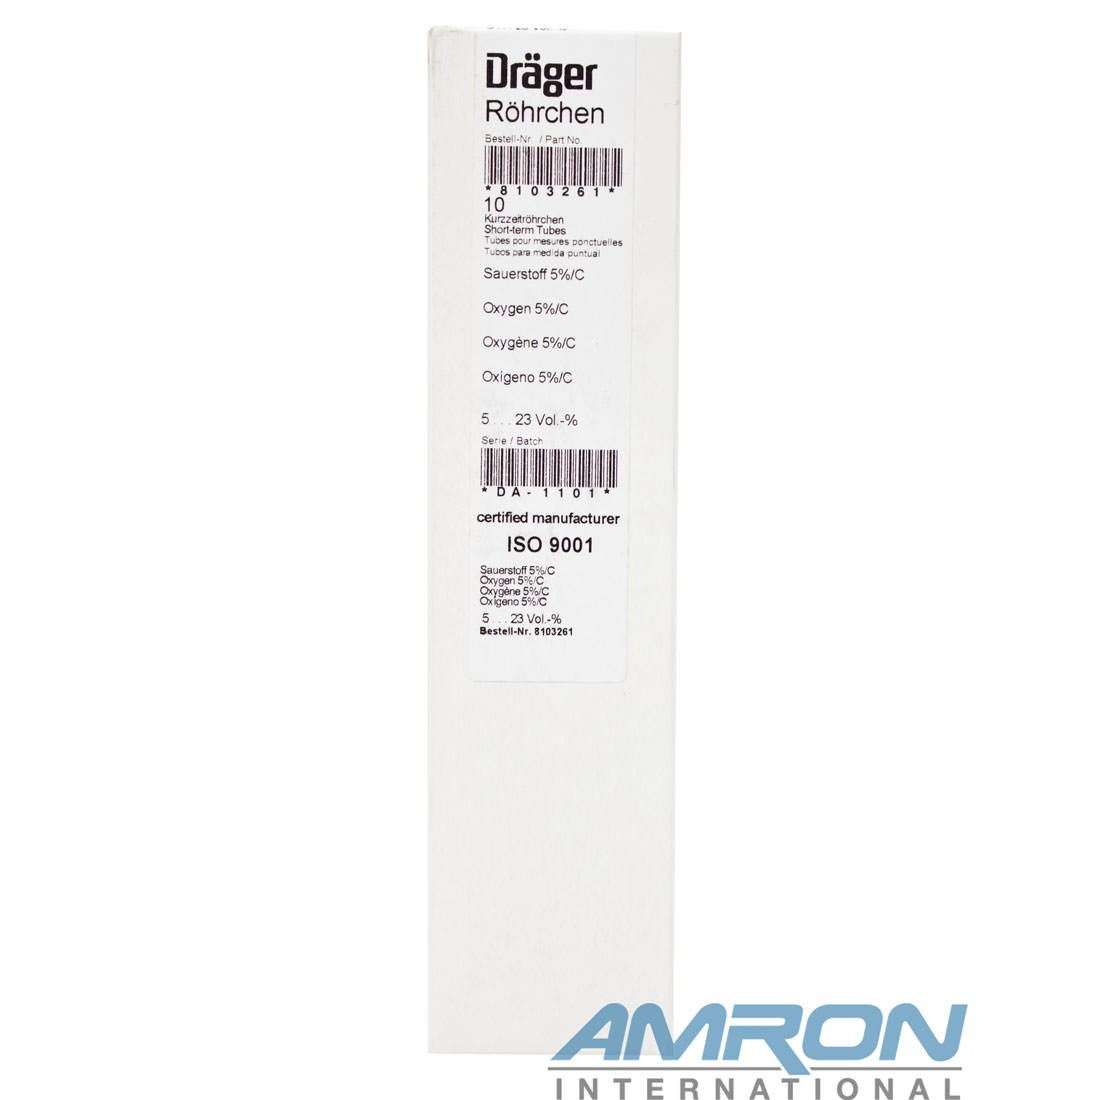 Drager Tube Oxygen 5%/C